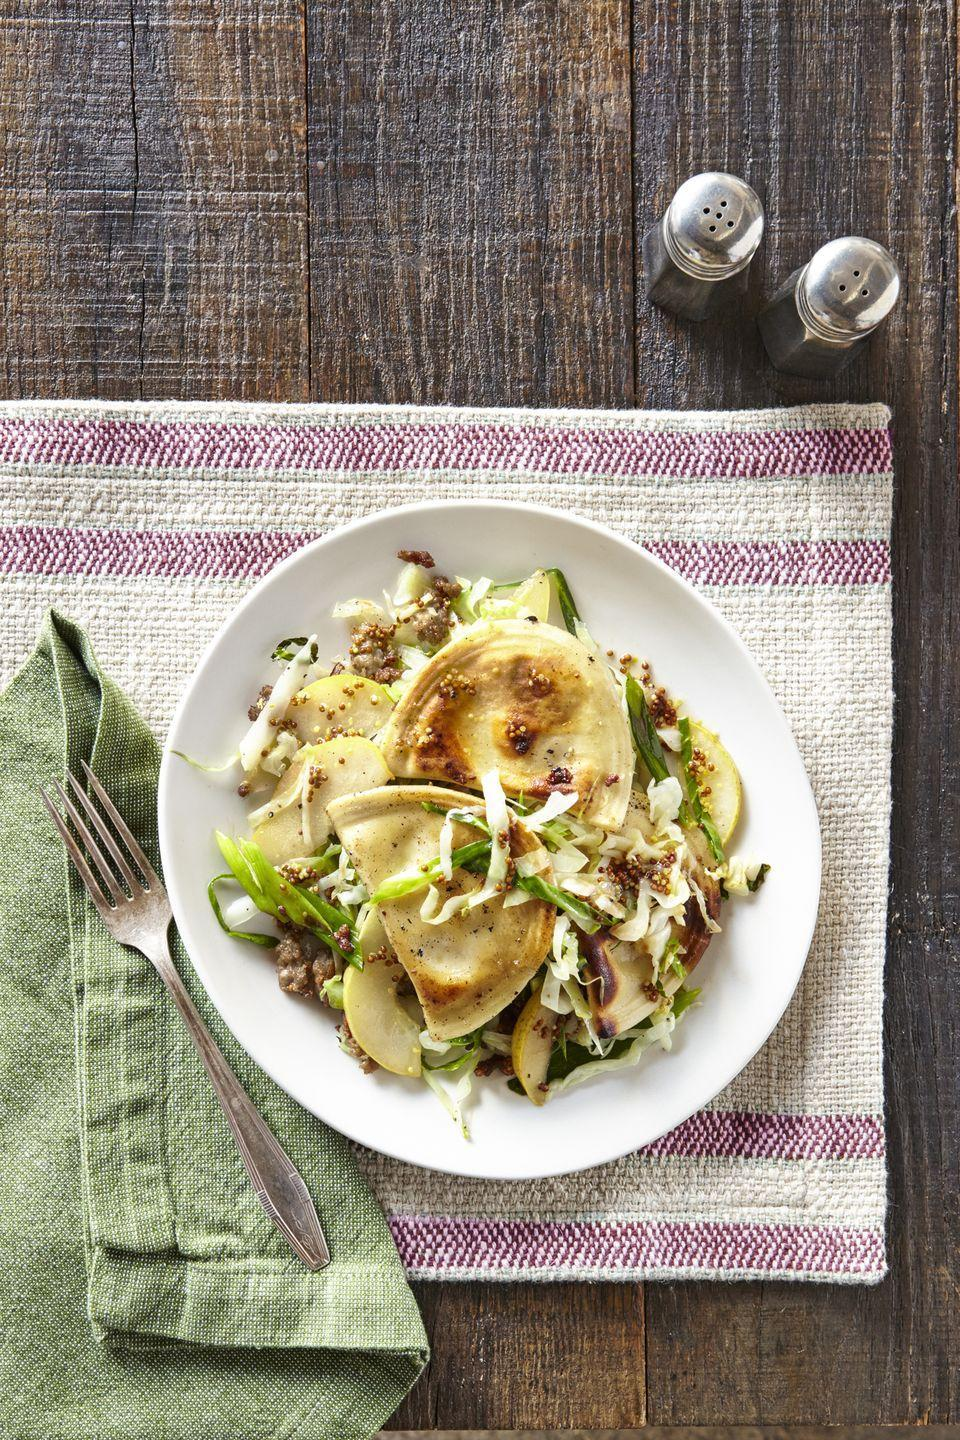 """<p>Pierogies are a great shortcut item that can be found in the freezer section of the grocery store. Steam for a softer texture, or fry if you prefer a few crispy edges.</p><p><strong><a href=""""https://www.countryliving.com/food-drinks/recipes/a39829/pierogies-with-sausage-cabbage-pear-recipe/"""" rel=""""nofollow noopener"""" target=""""_blank"""" data-ylk=""""slk:Get the recipe"""" class=""""link rapid-noclick-resp"""">Get the recipe</a>.</strong></p>"""